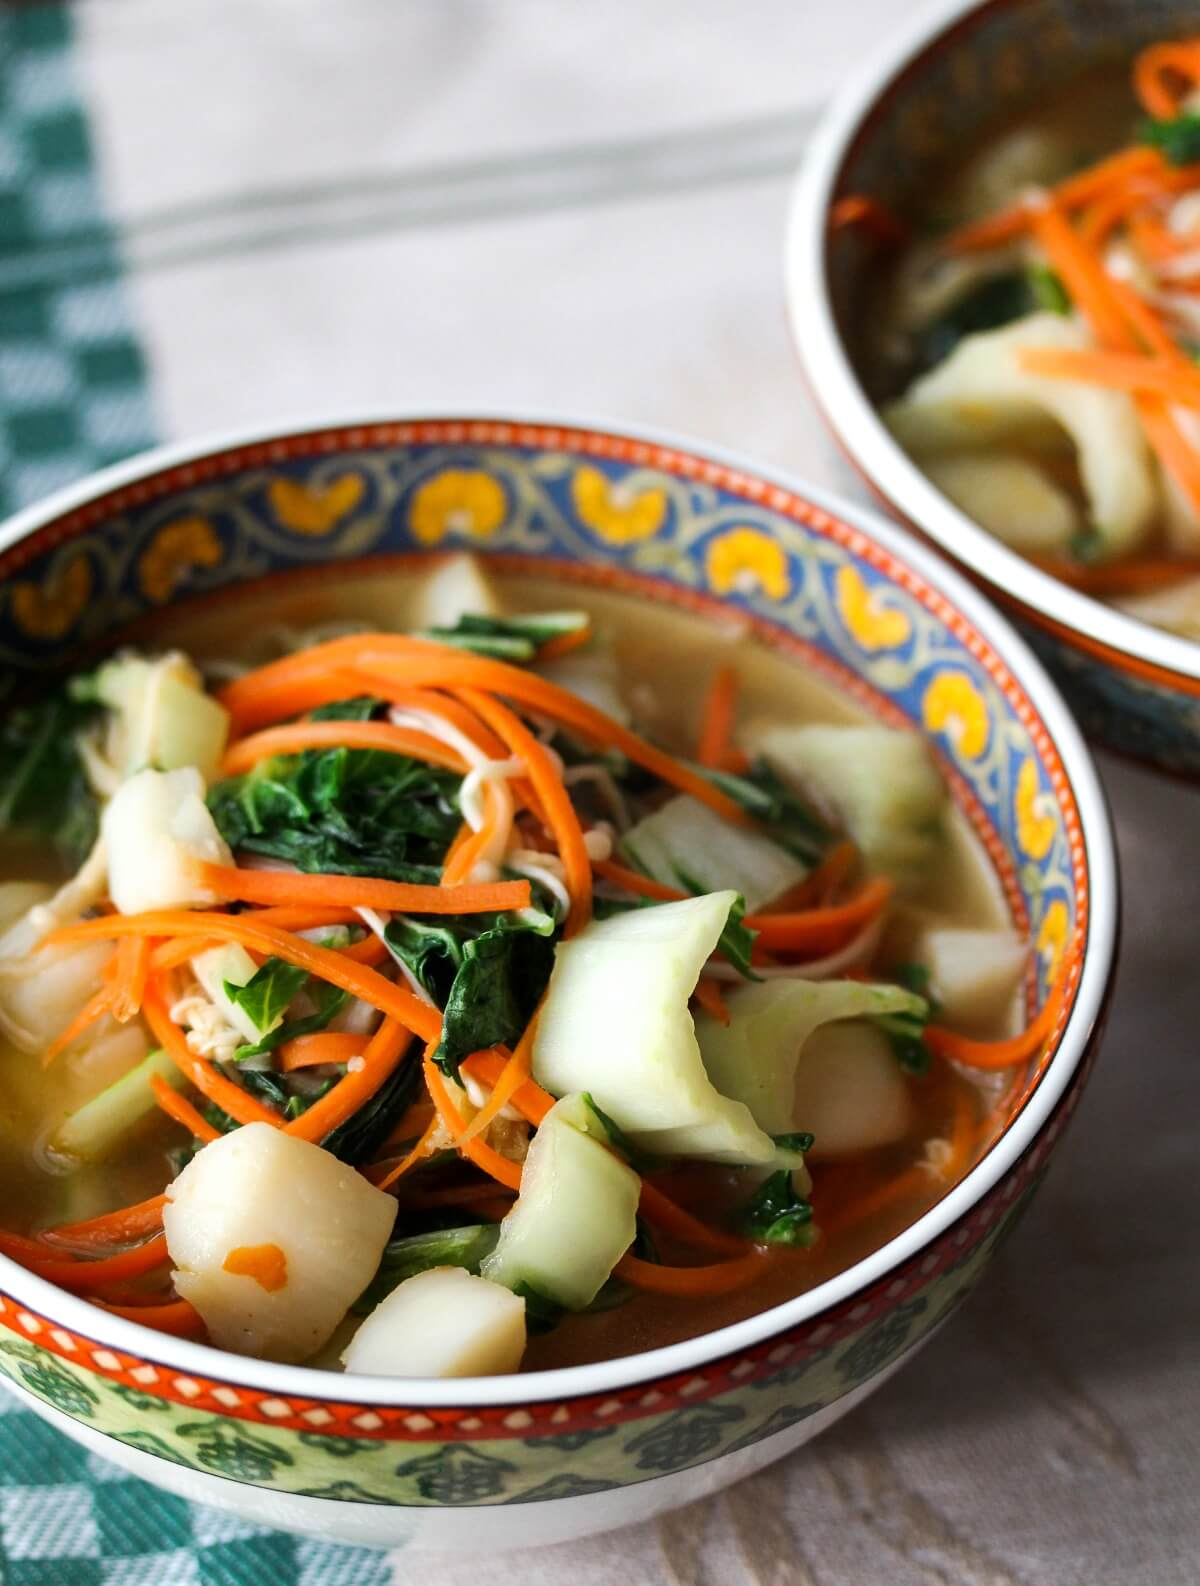 Bay scallop noodle soup with carrots in bowls.